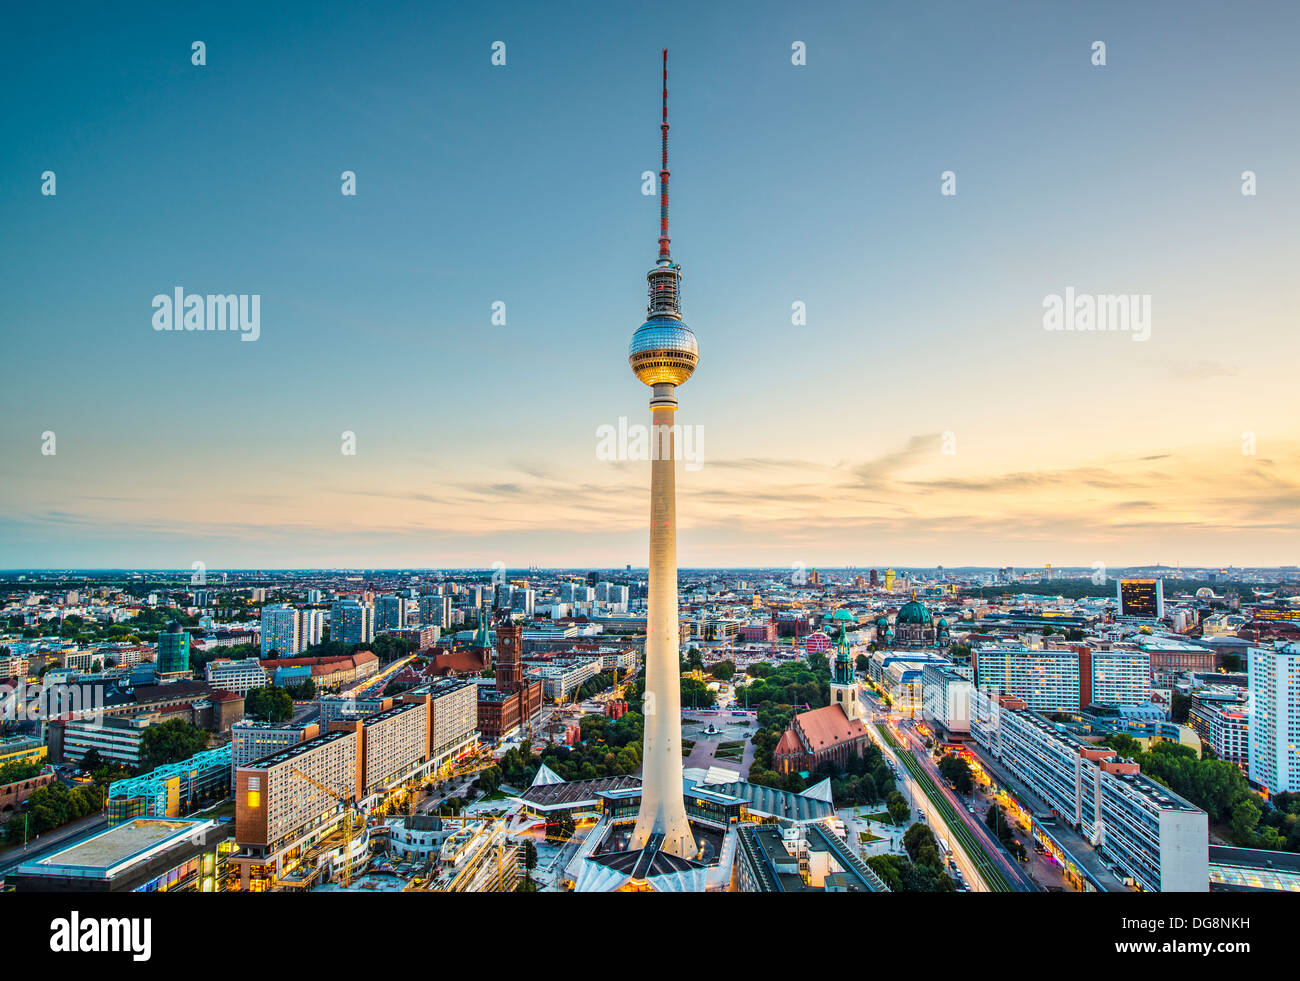 Berlin, Germany view. - Stock Image